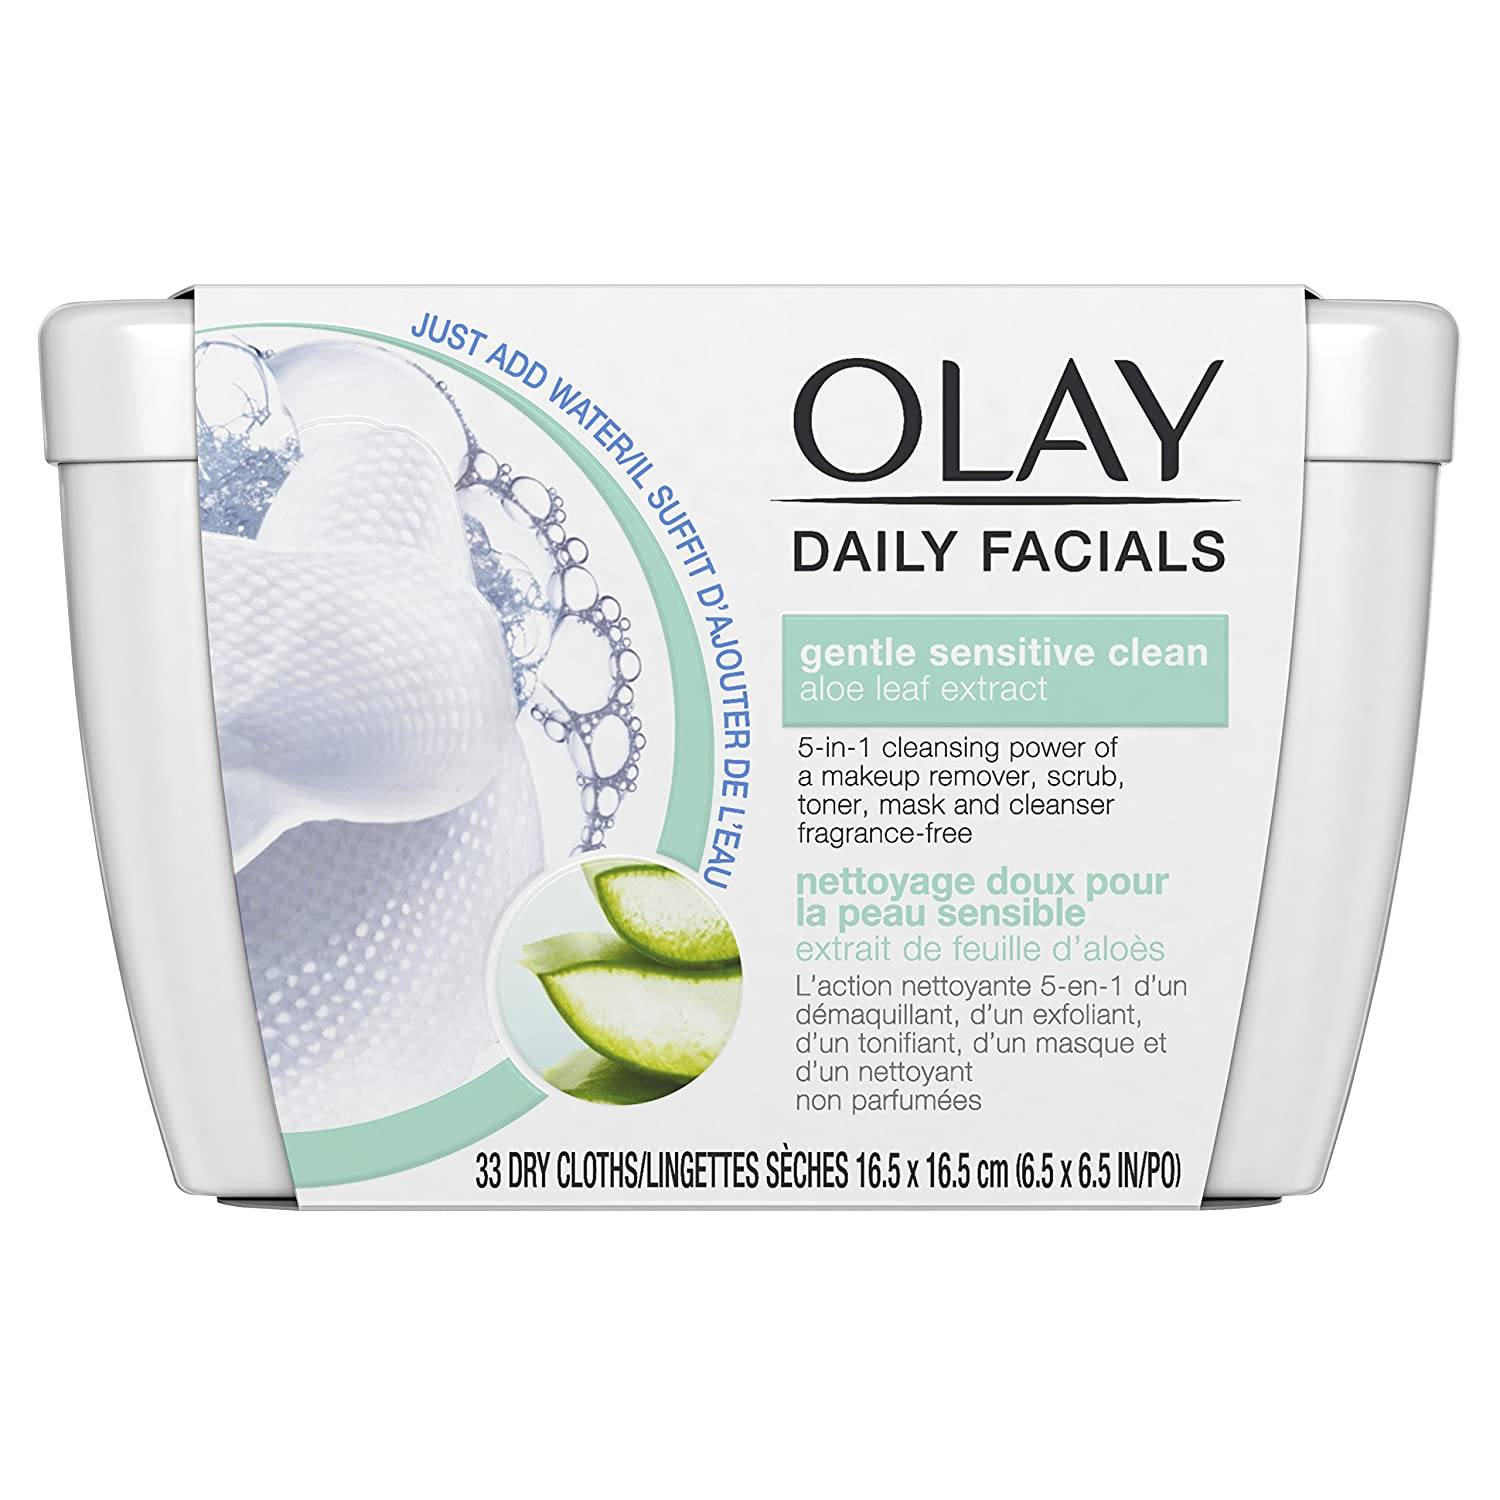 Olay Daily Facial Sensitive Cleansing Cloths w/Aloe Extract, Makeup Remover 33 Count, Pack of 2 NA